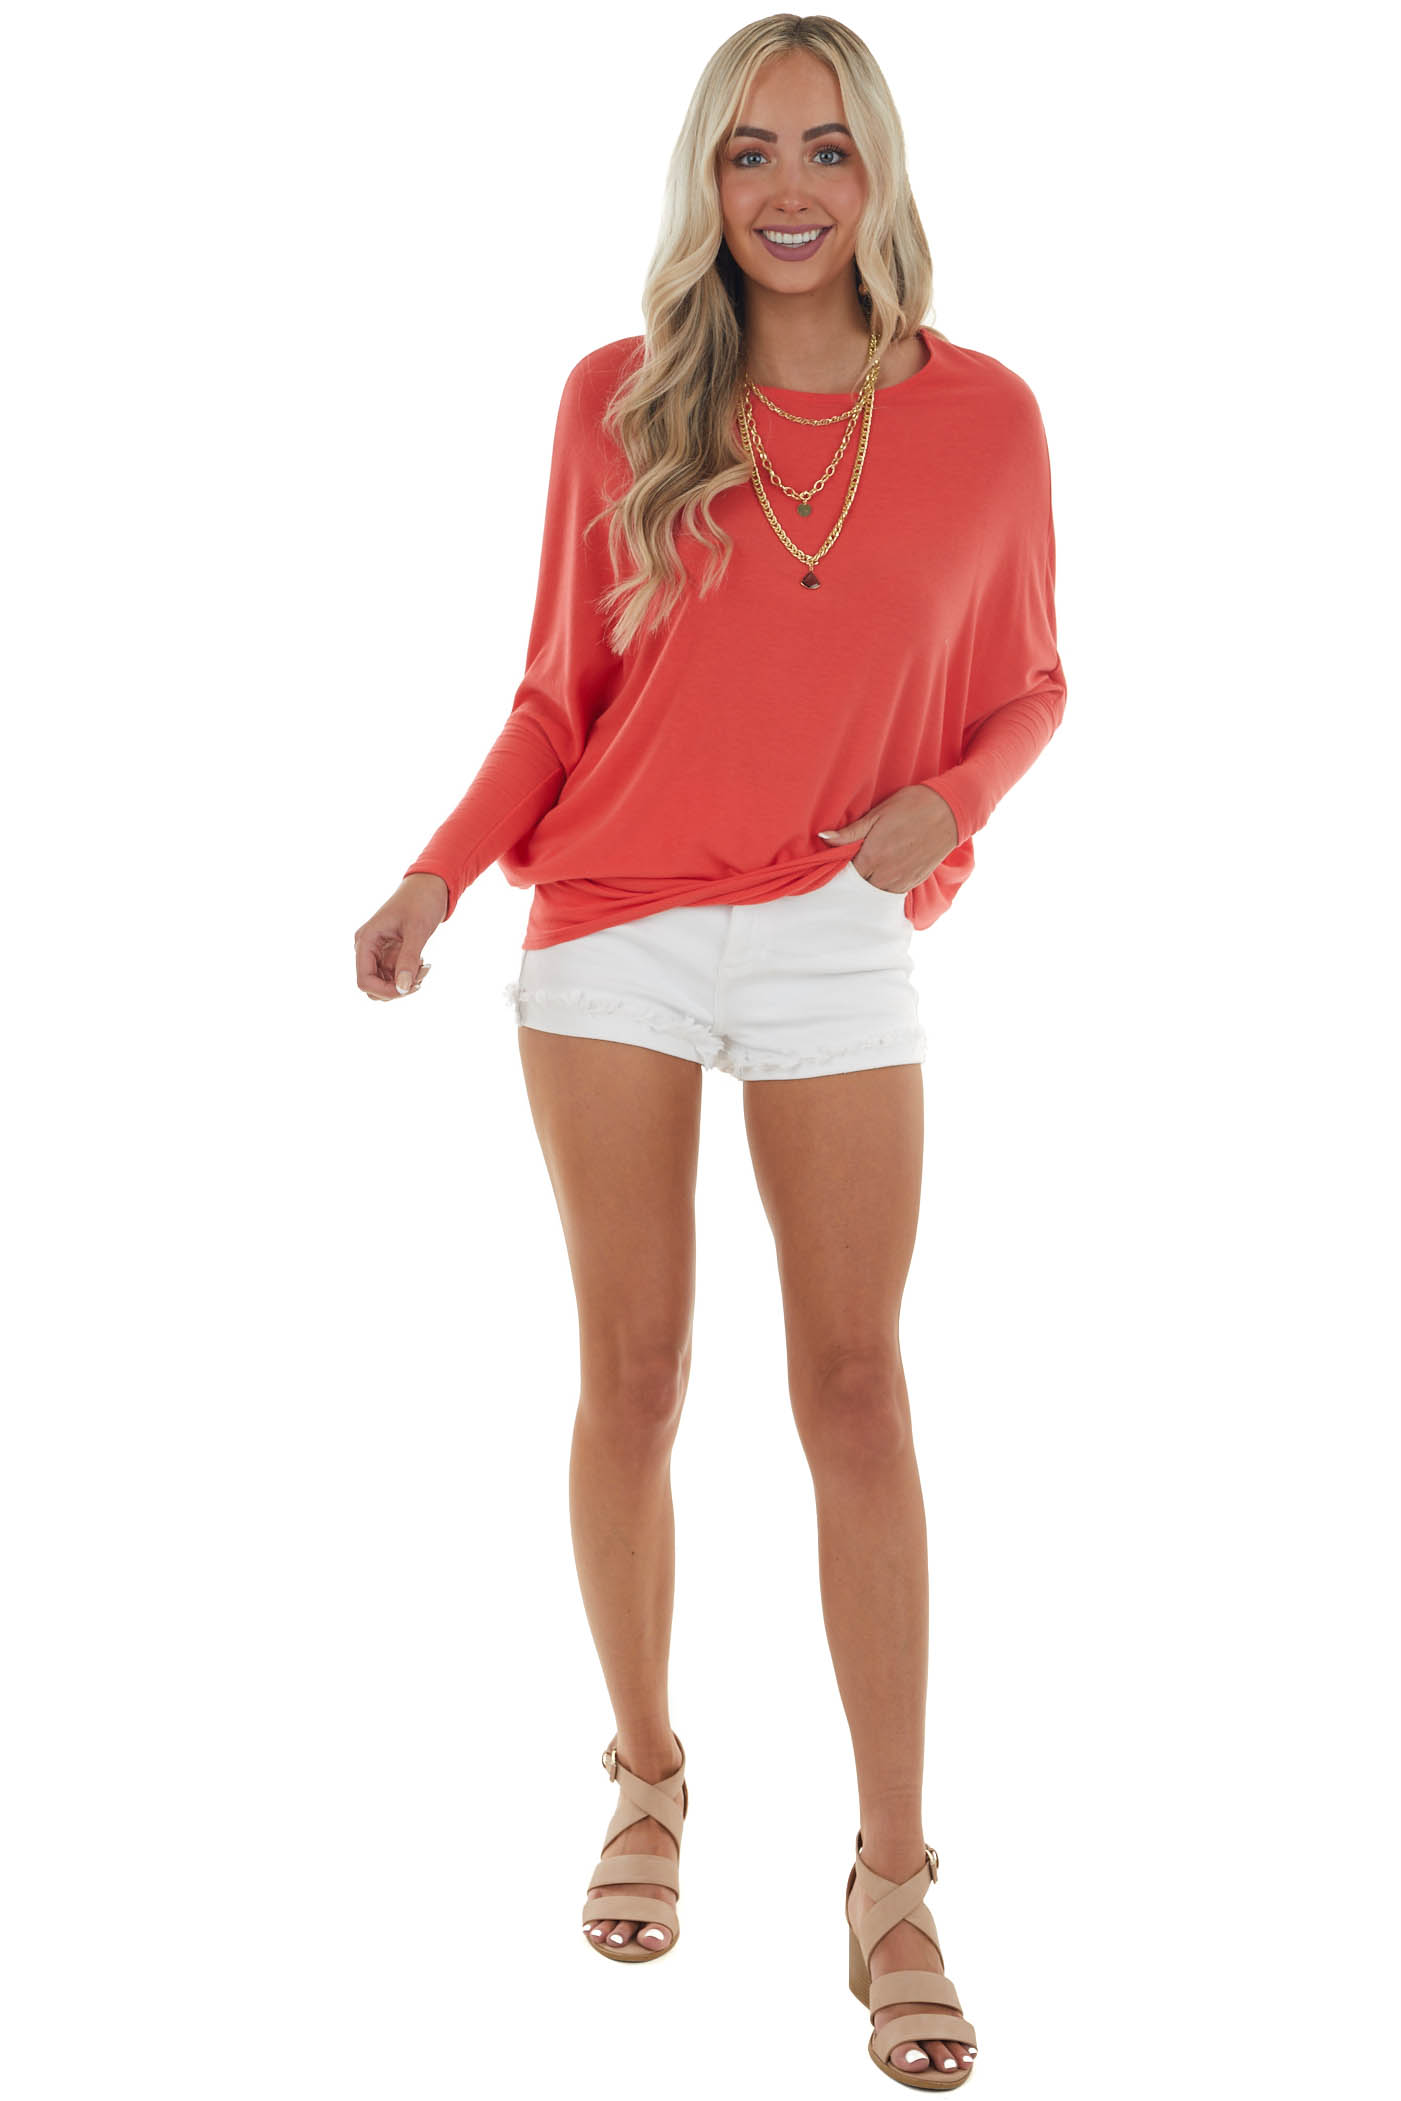 Scarlet Round Neck Top with Long Dolman Sleeves